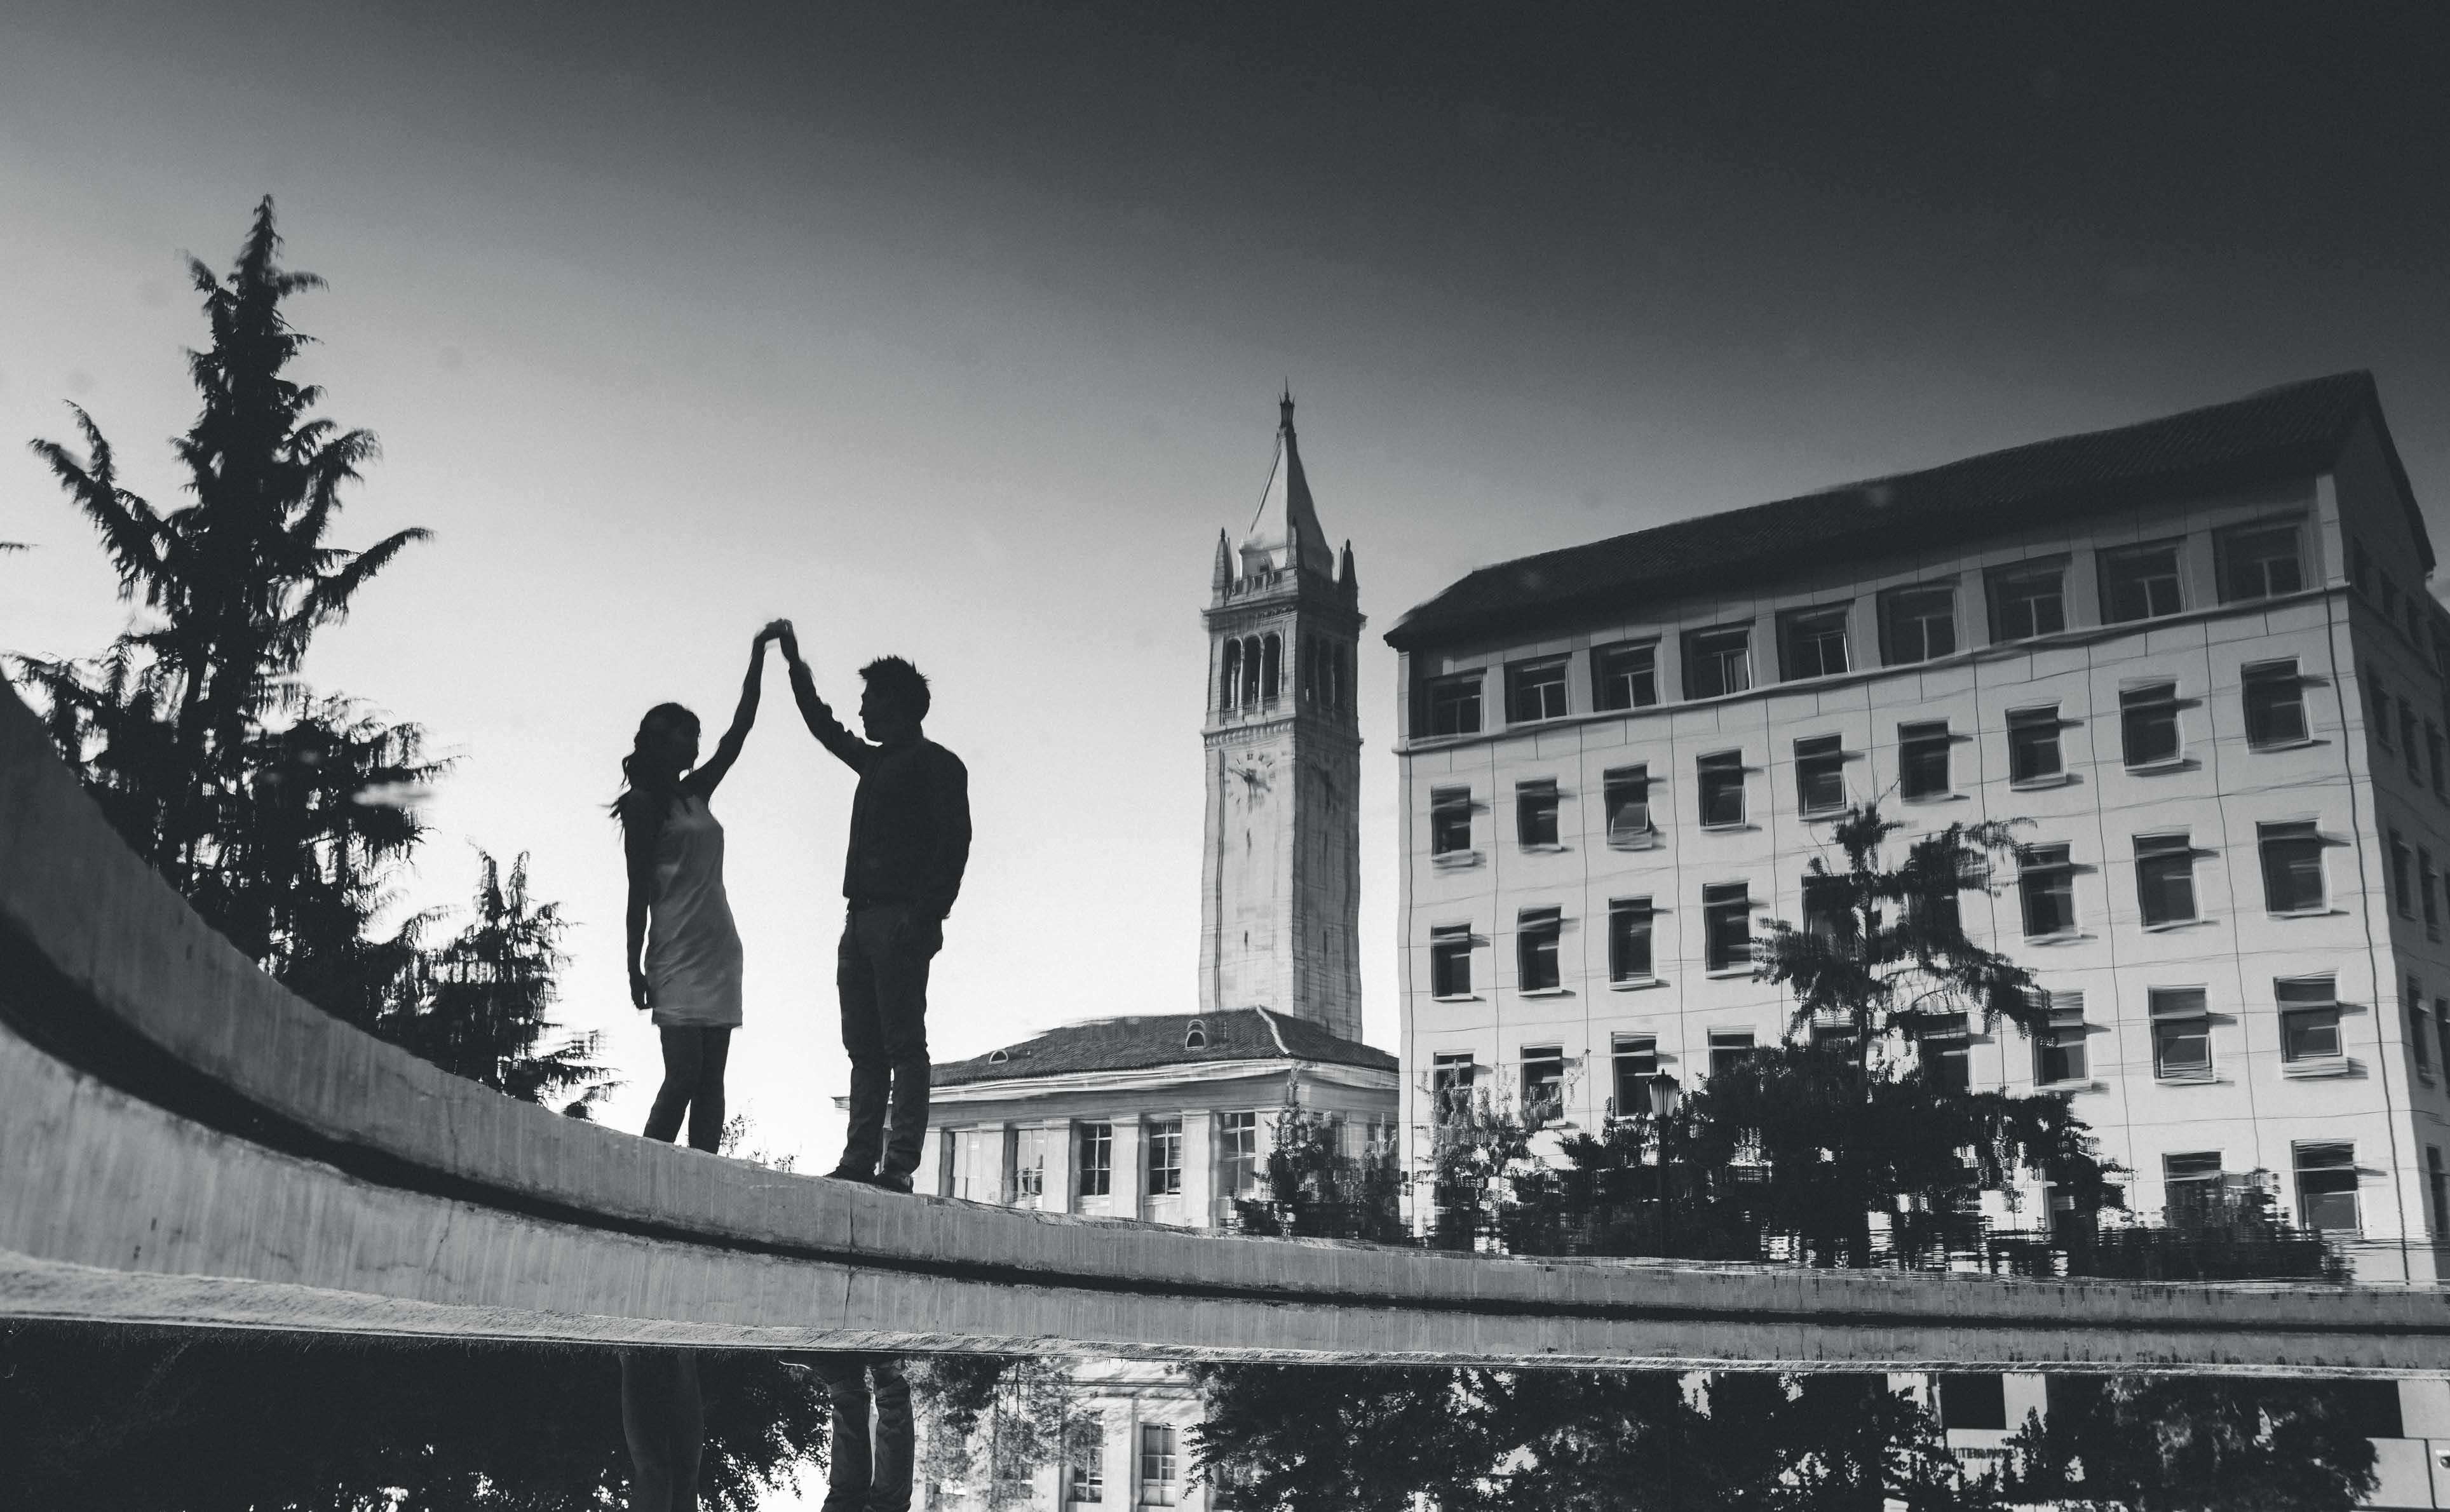 reflection of a dancing couple in uc berkeley